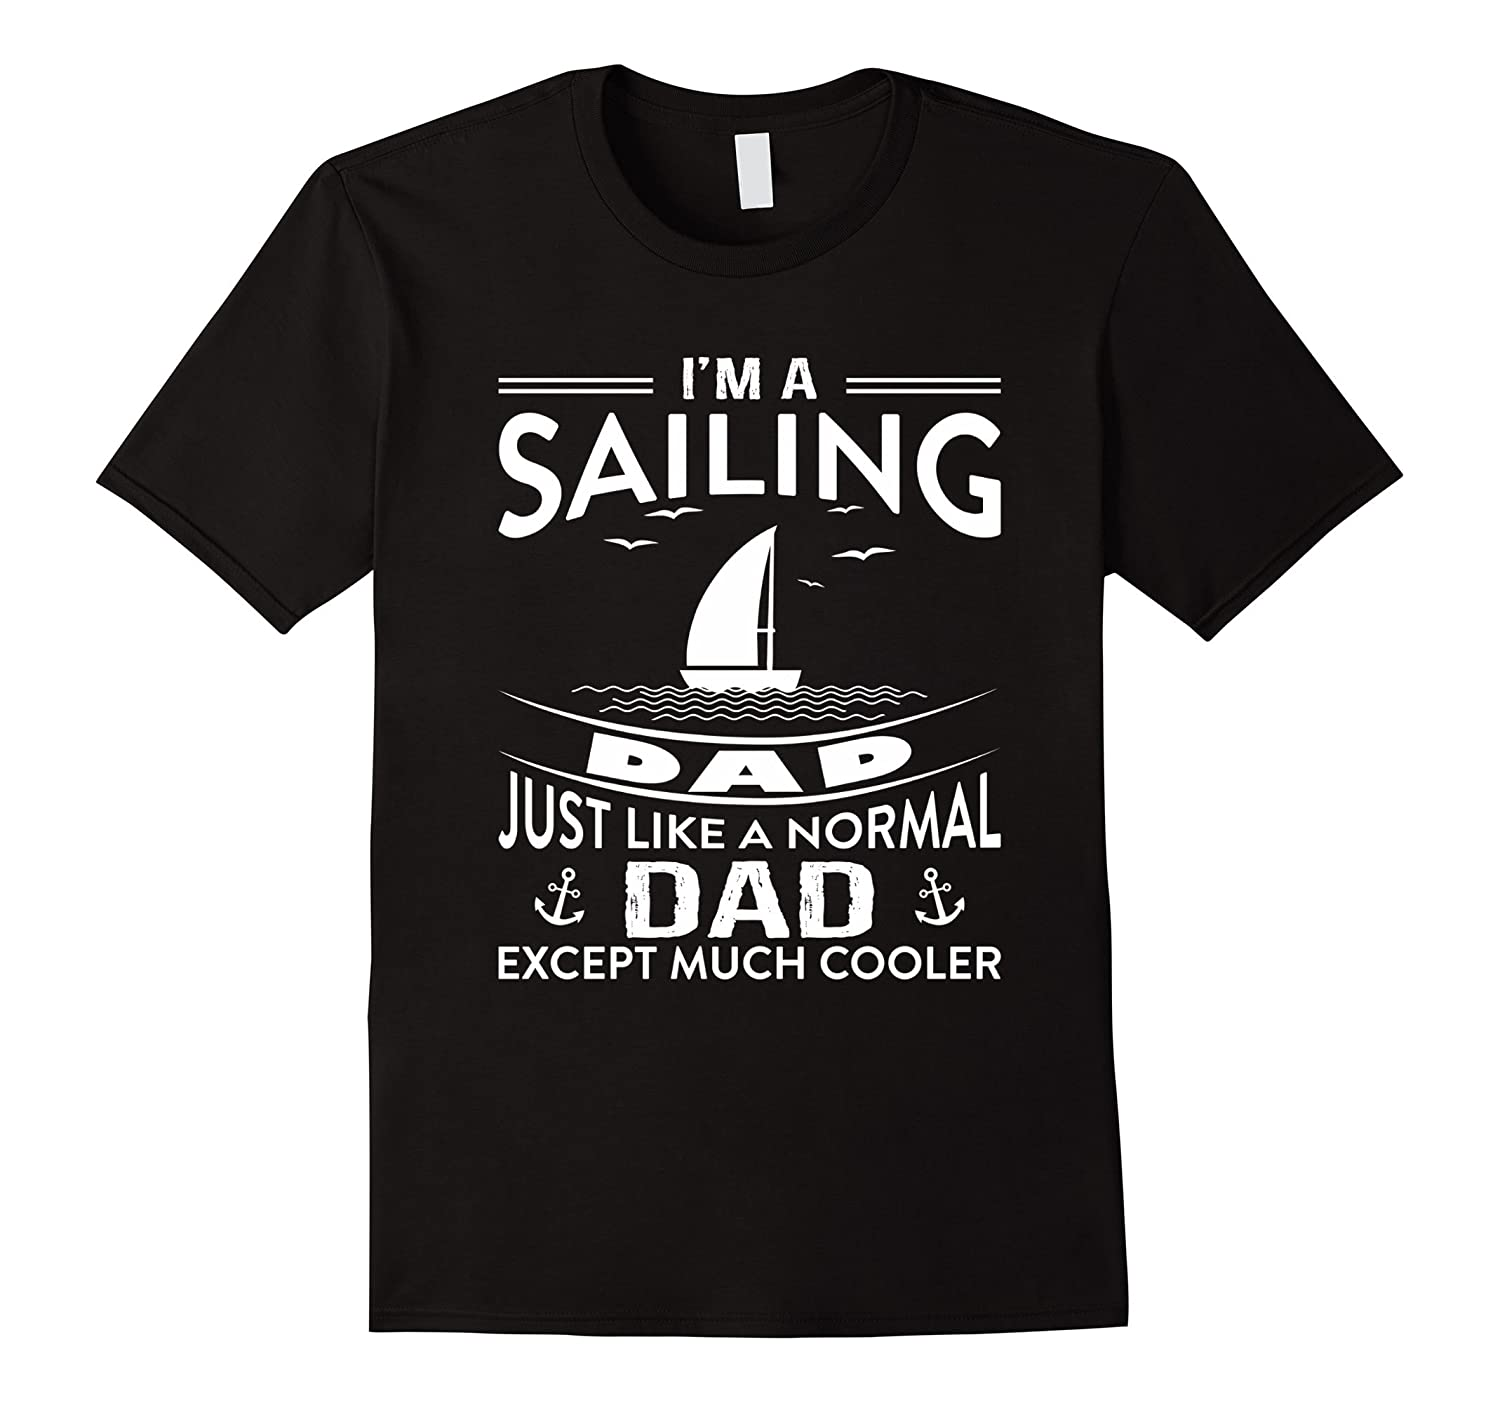 a0c55d66 I Am A Sailing Dad Just Like A Normal Dad T-shirt-PL – Polozatee